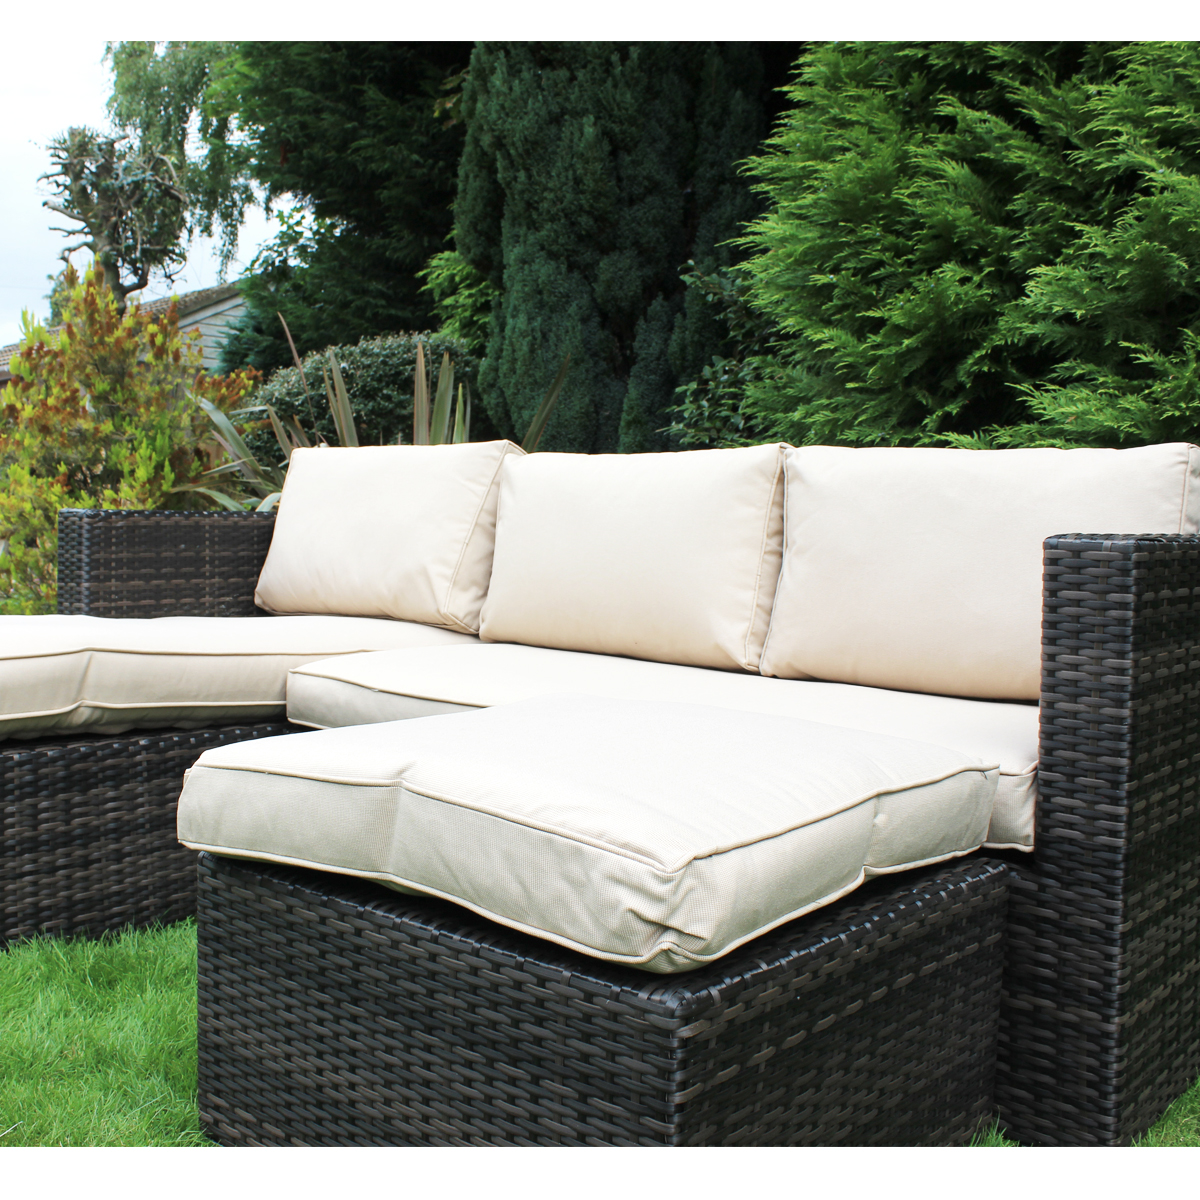 Charles Bentley Garden L-Shaped Rattan Corner Sofa Outdoor